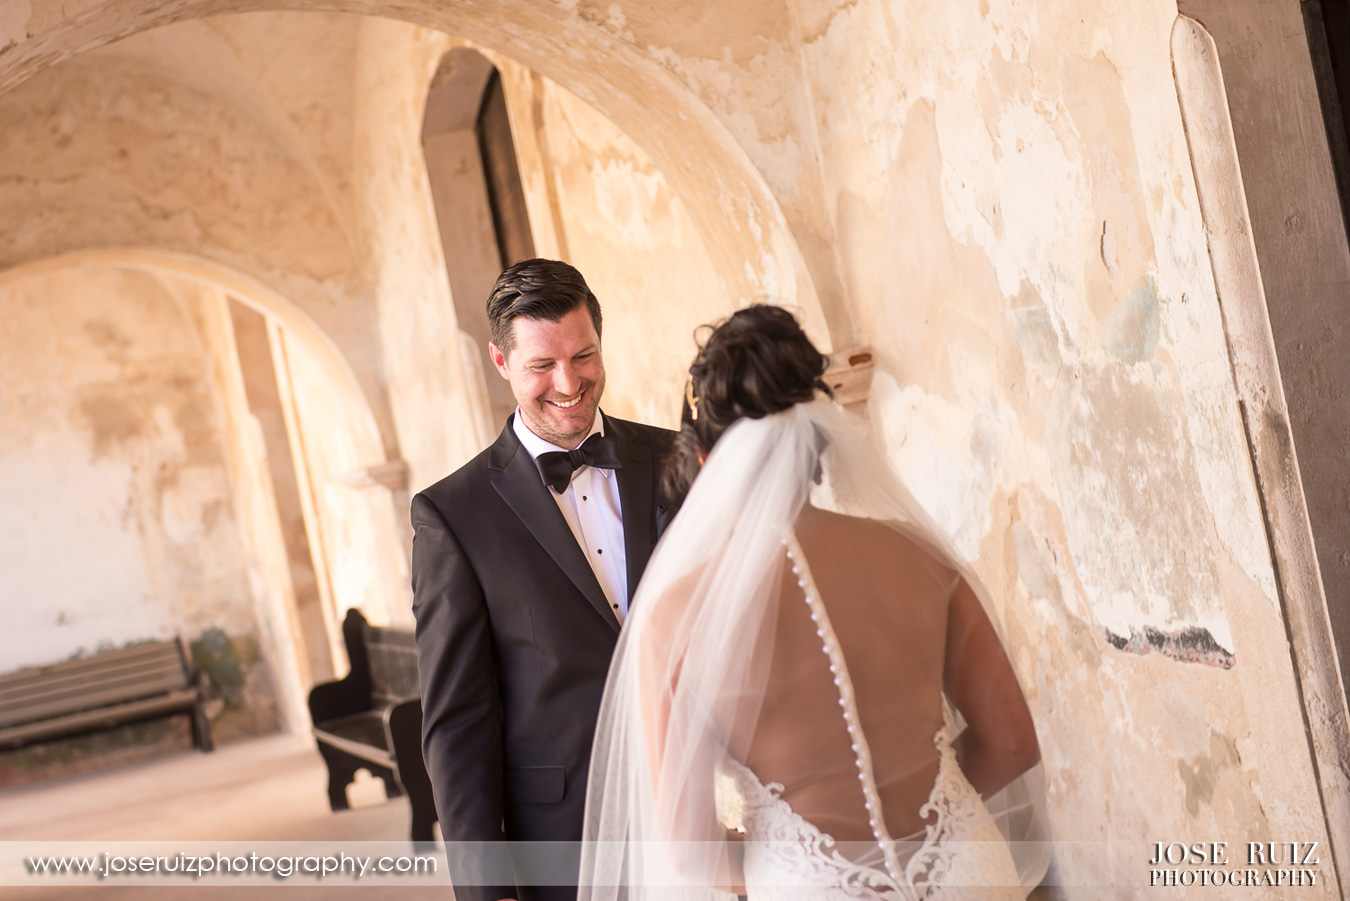 Destination-Wedding-in-Hotel-El-Convento,-Jennifer-&-Ian-0044.jpg